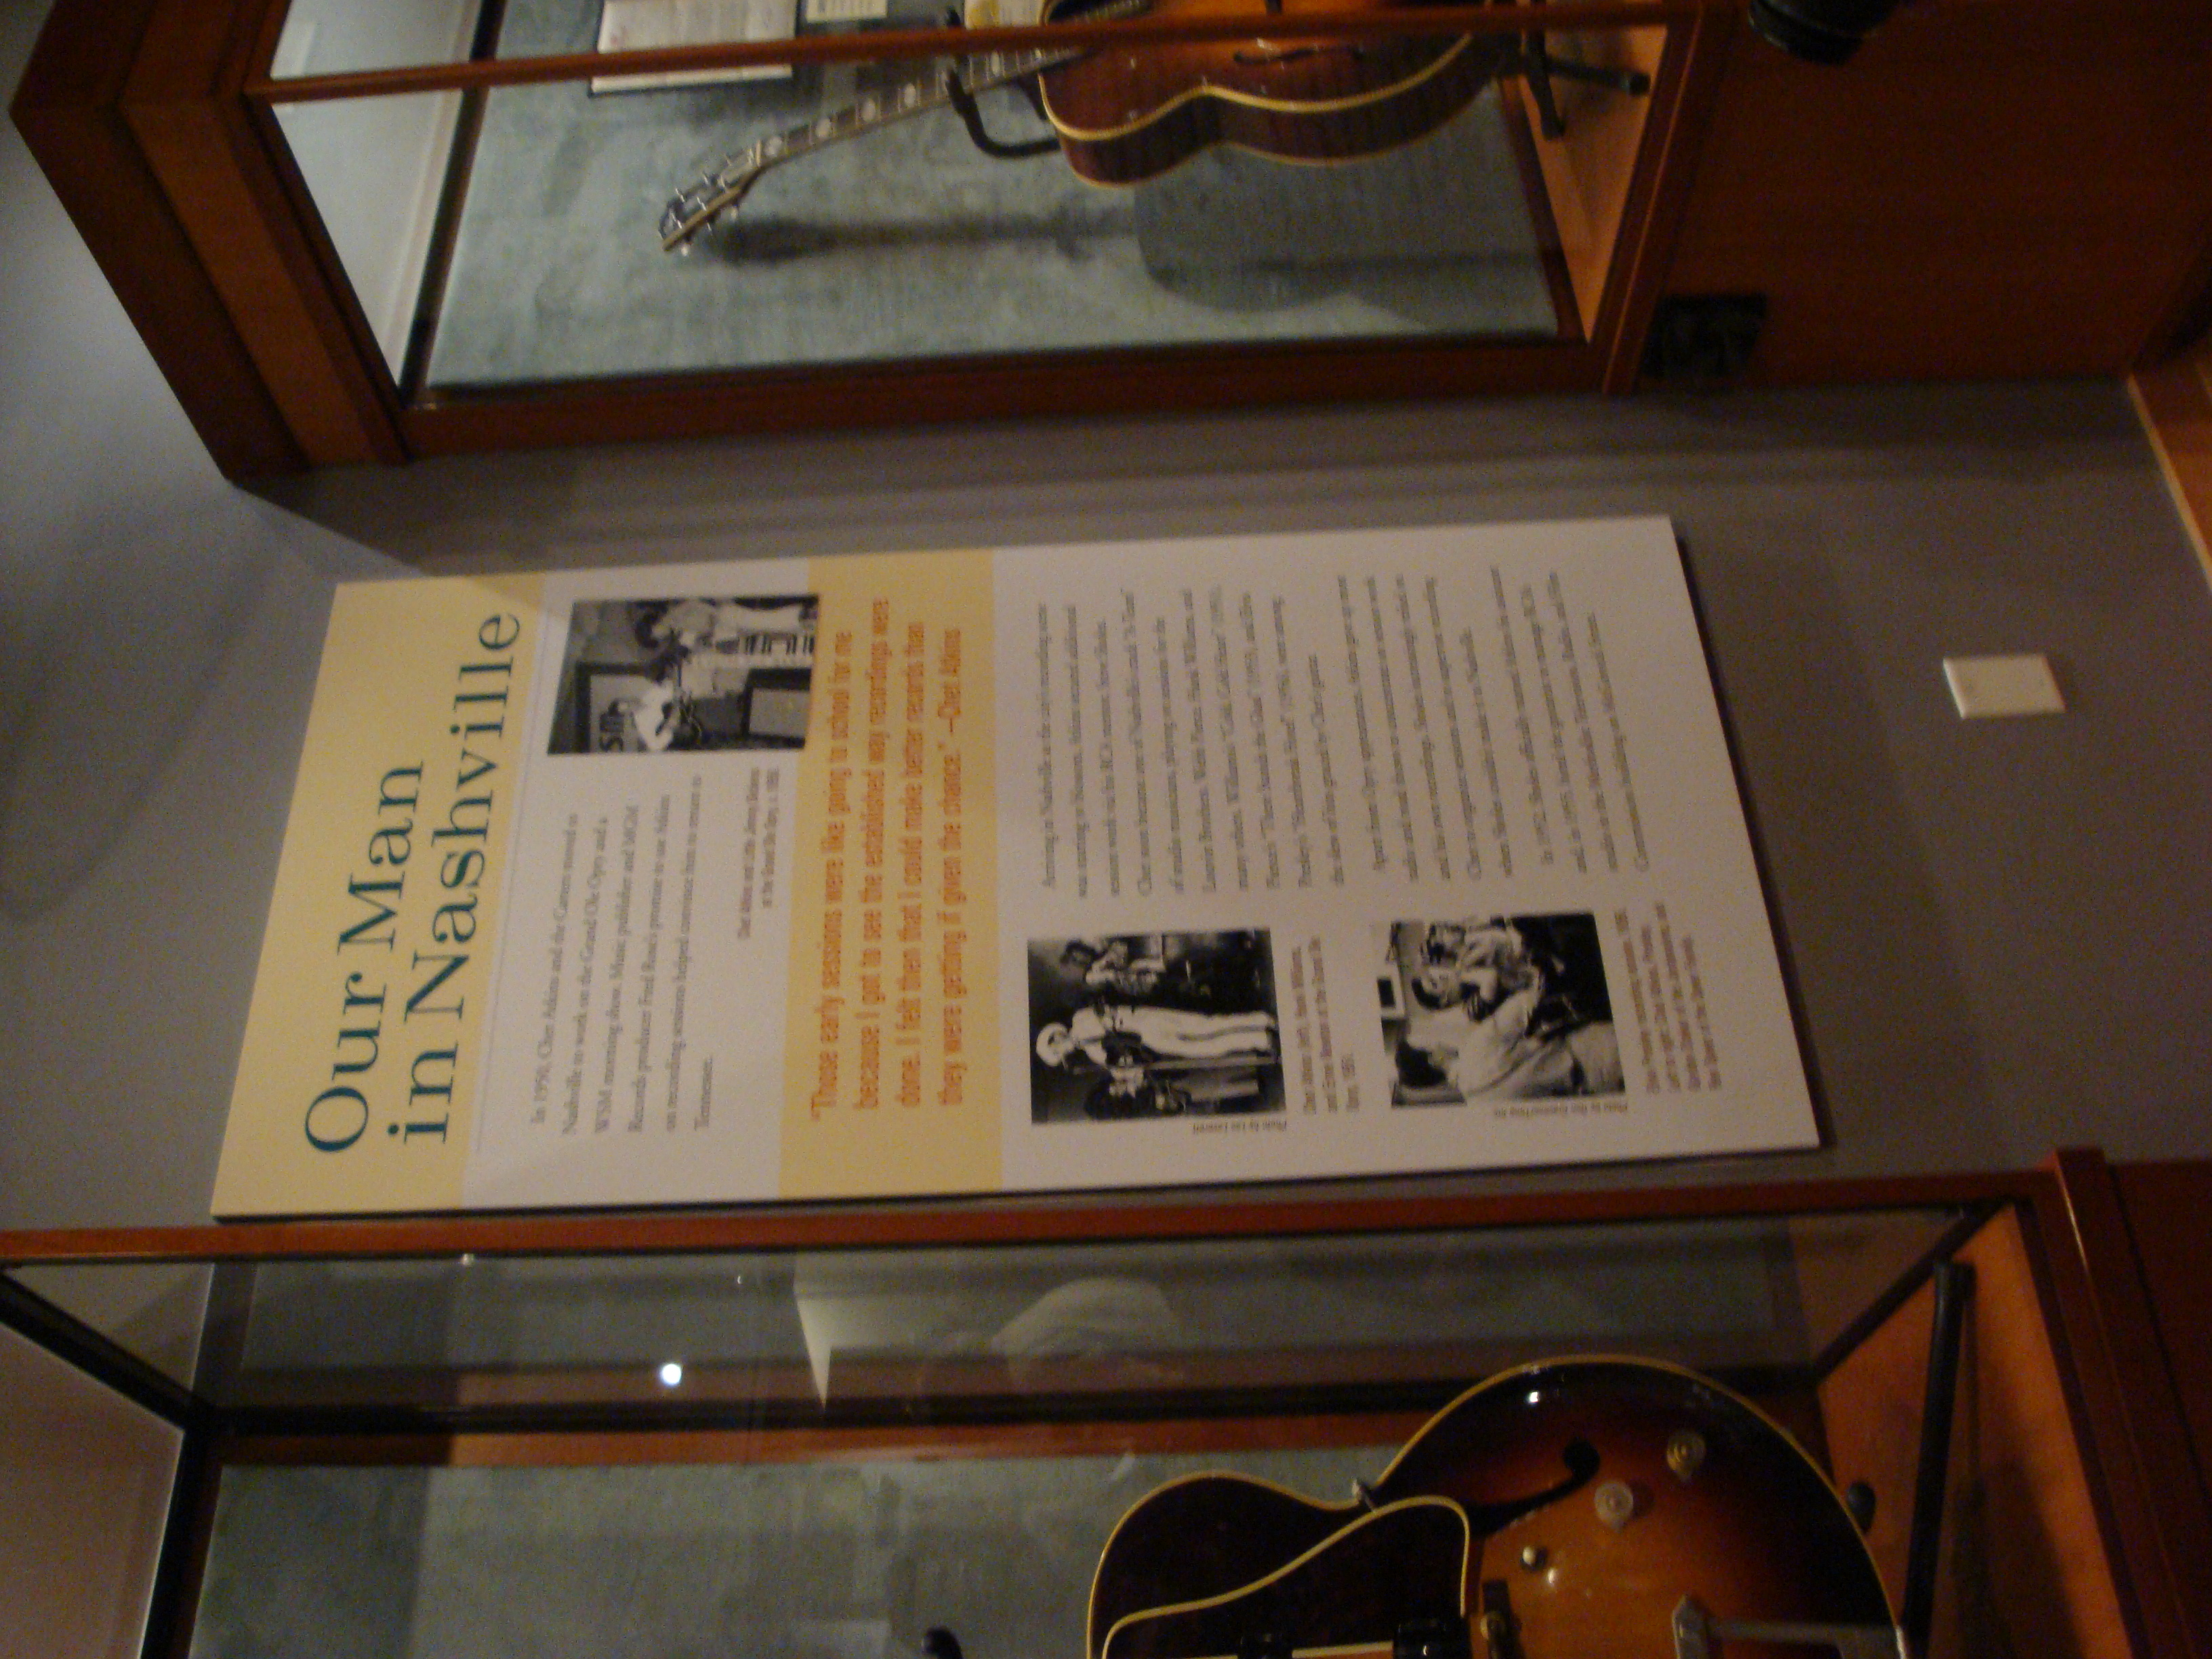 Chet Atkins exhibition at the Country Music Hall of Fame and Museum